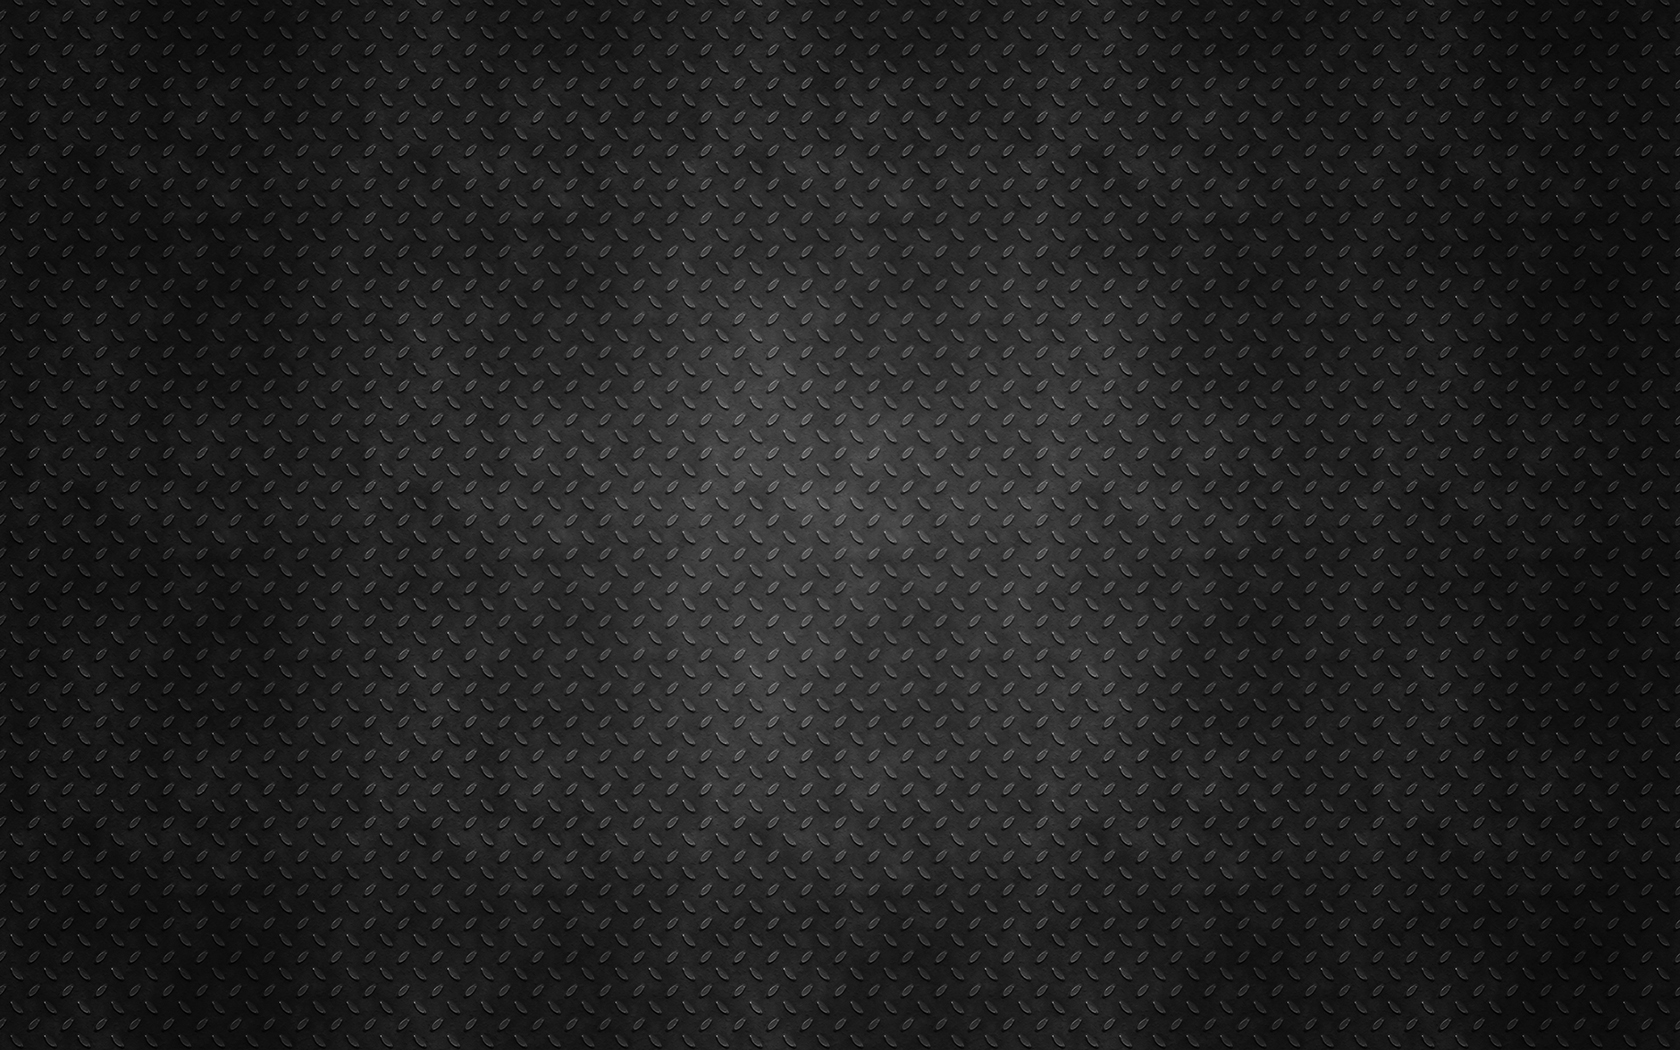 black background metal texture wallpaper 1680x1050jpg 1680x1050